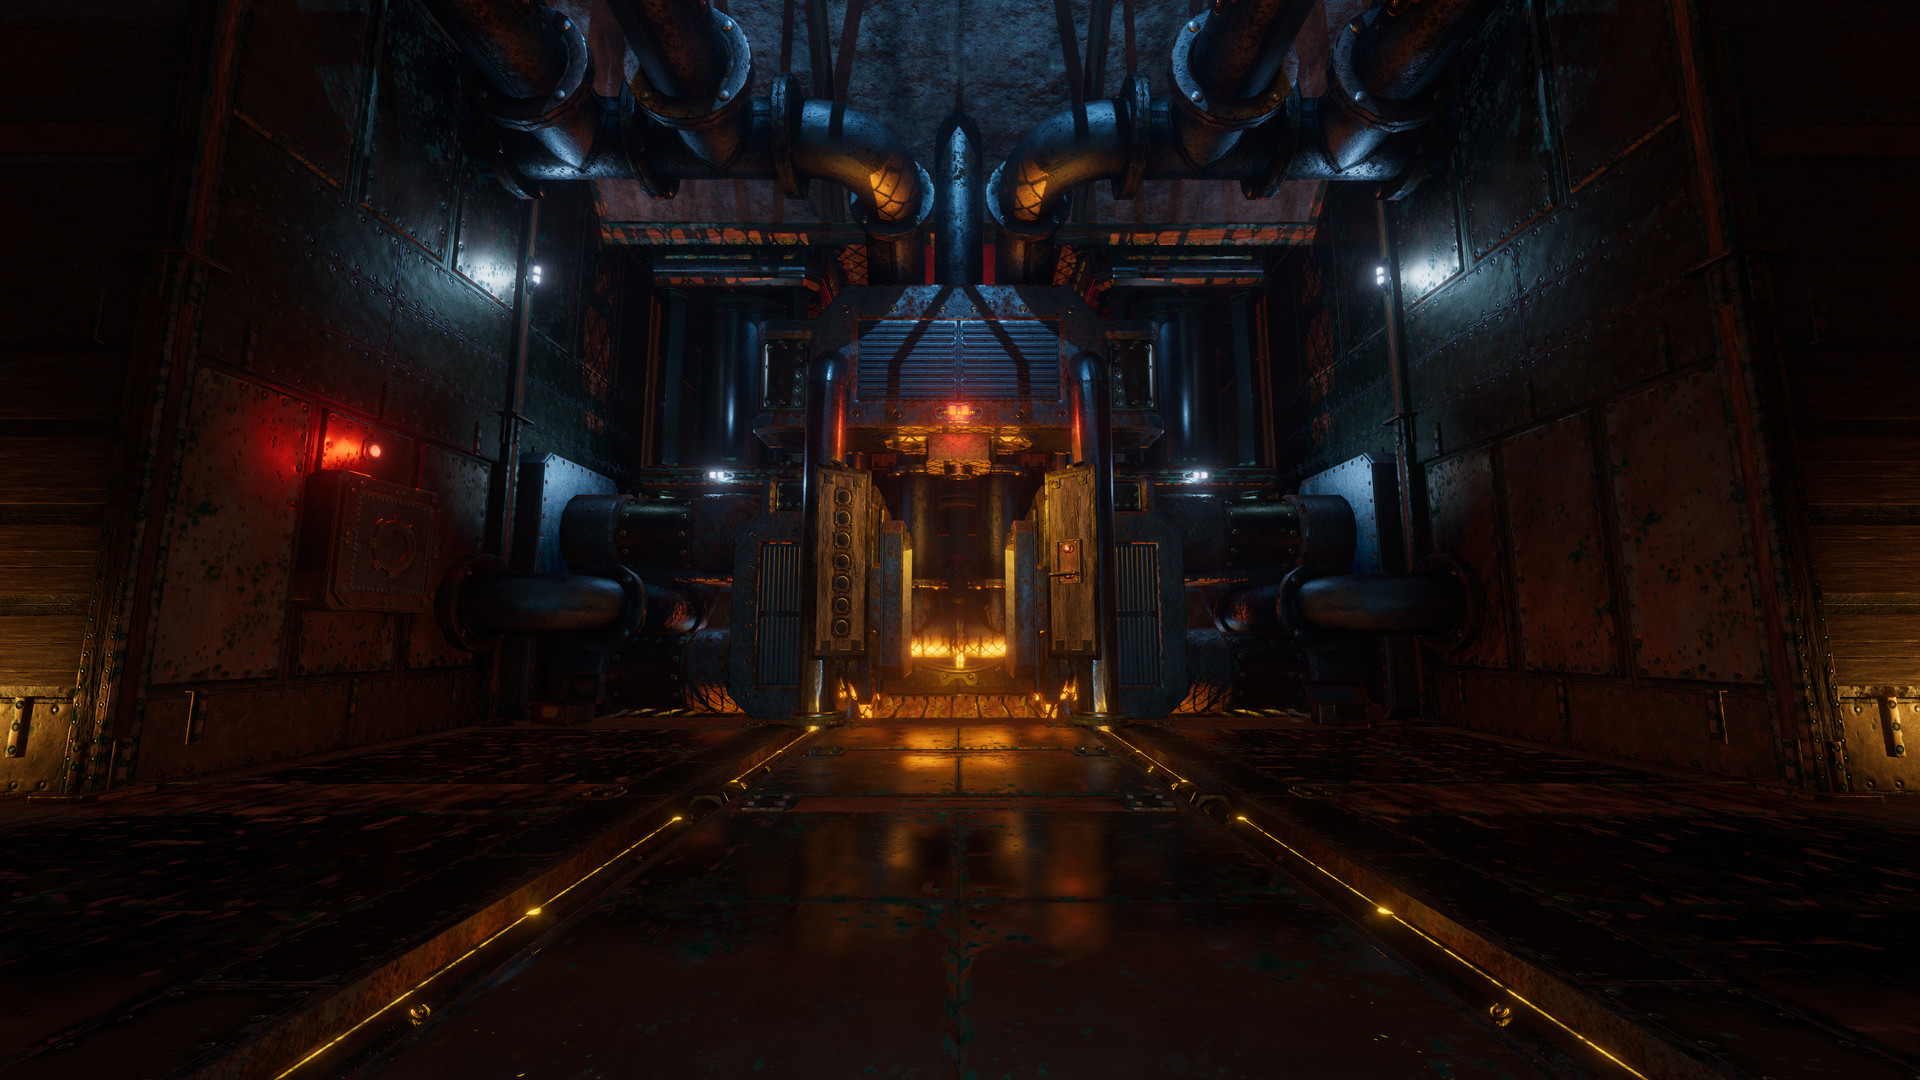 Vaporum: Lockdown Is A New Dungeon Crawling Steampunk Title Now Available For PC